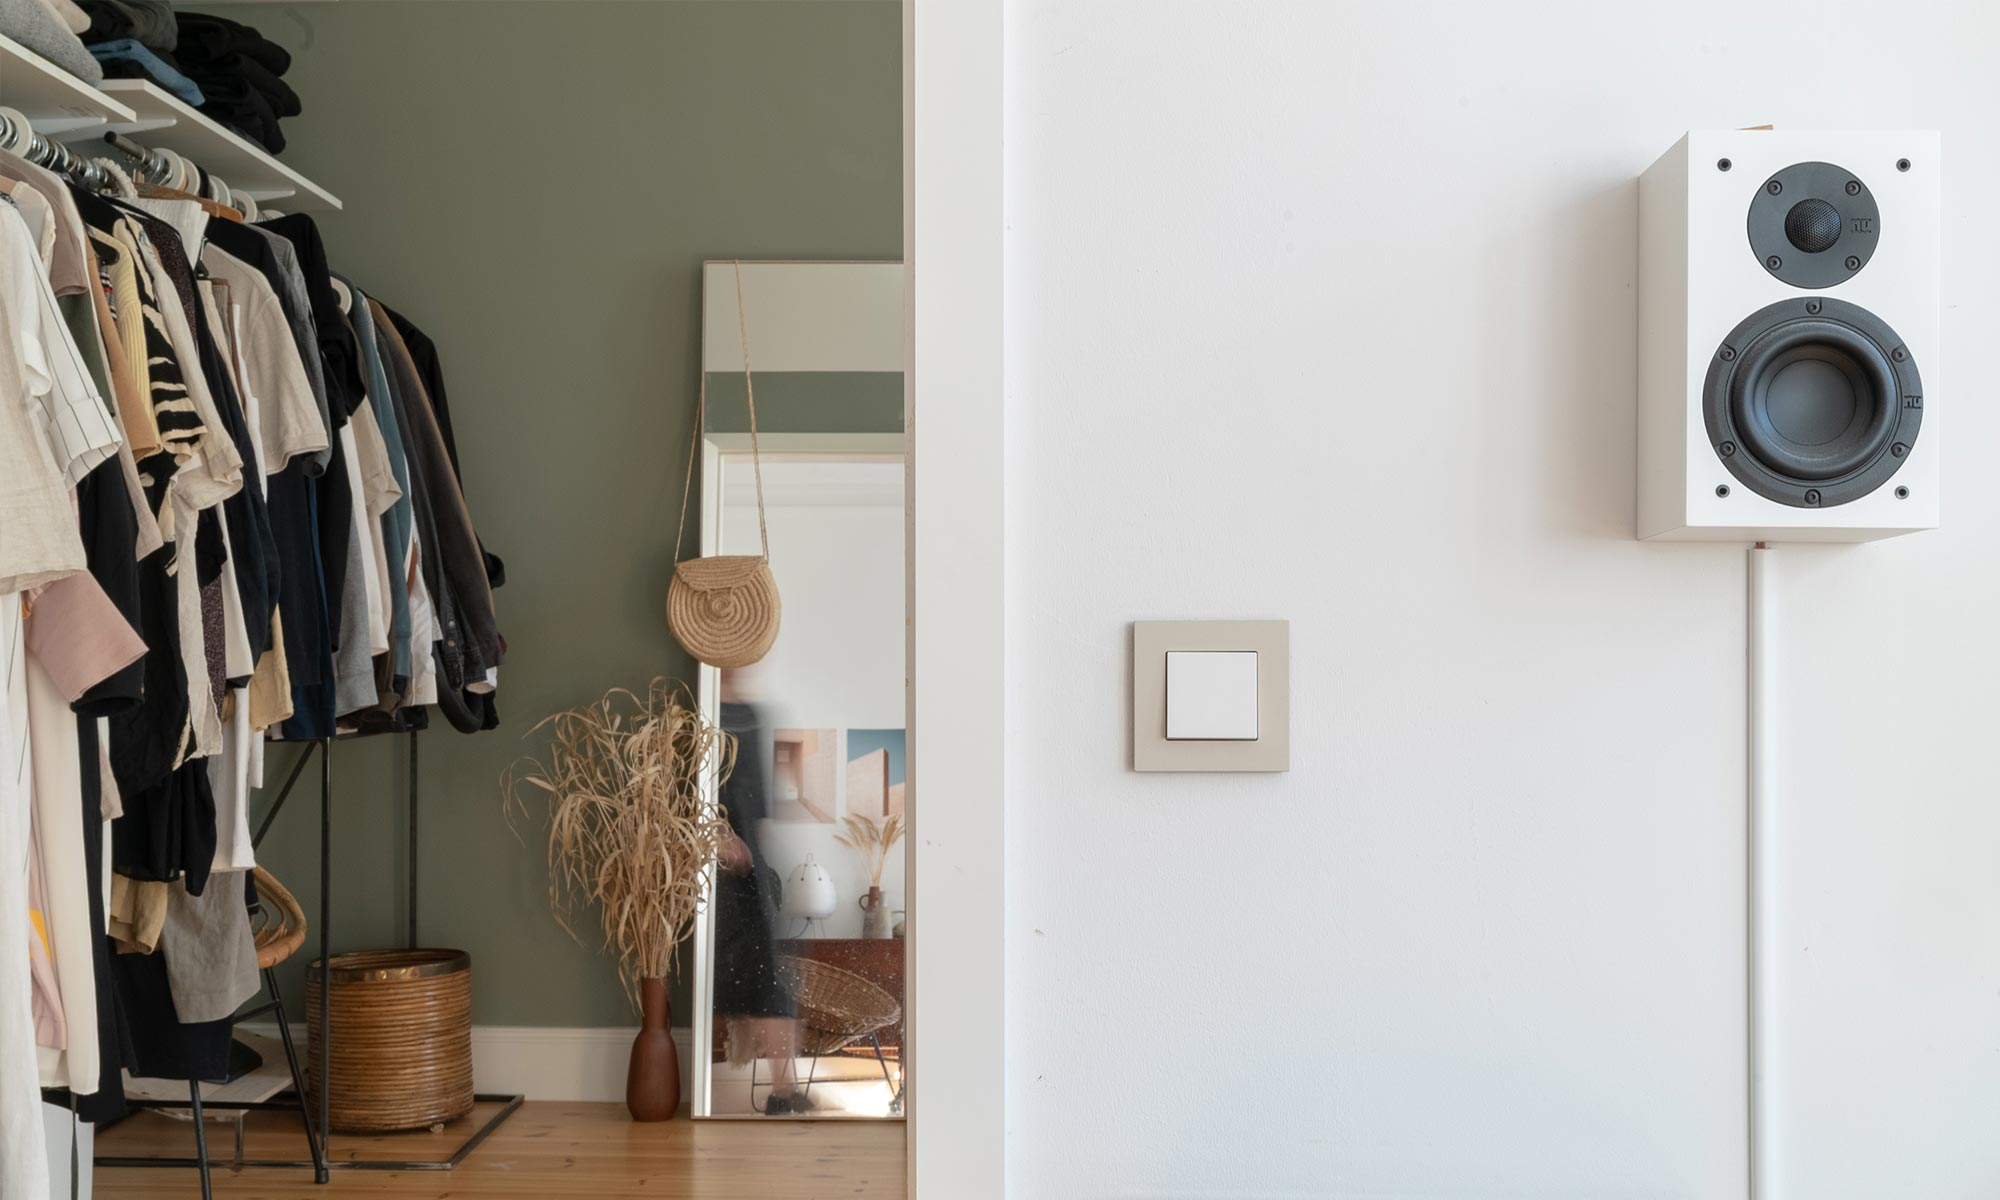 Subtle colours: view on gira light switch